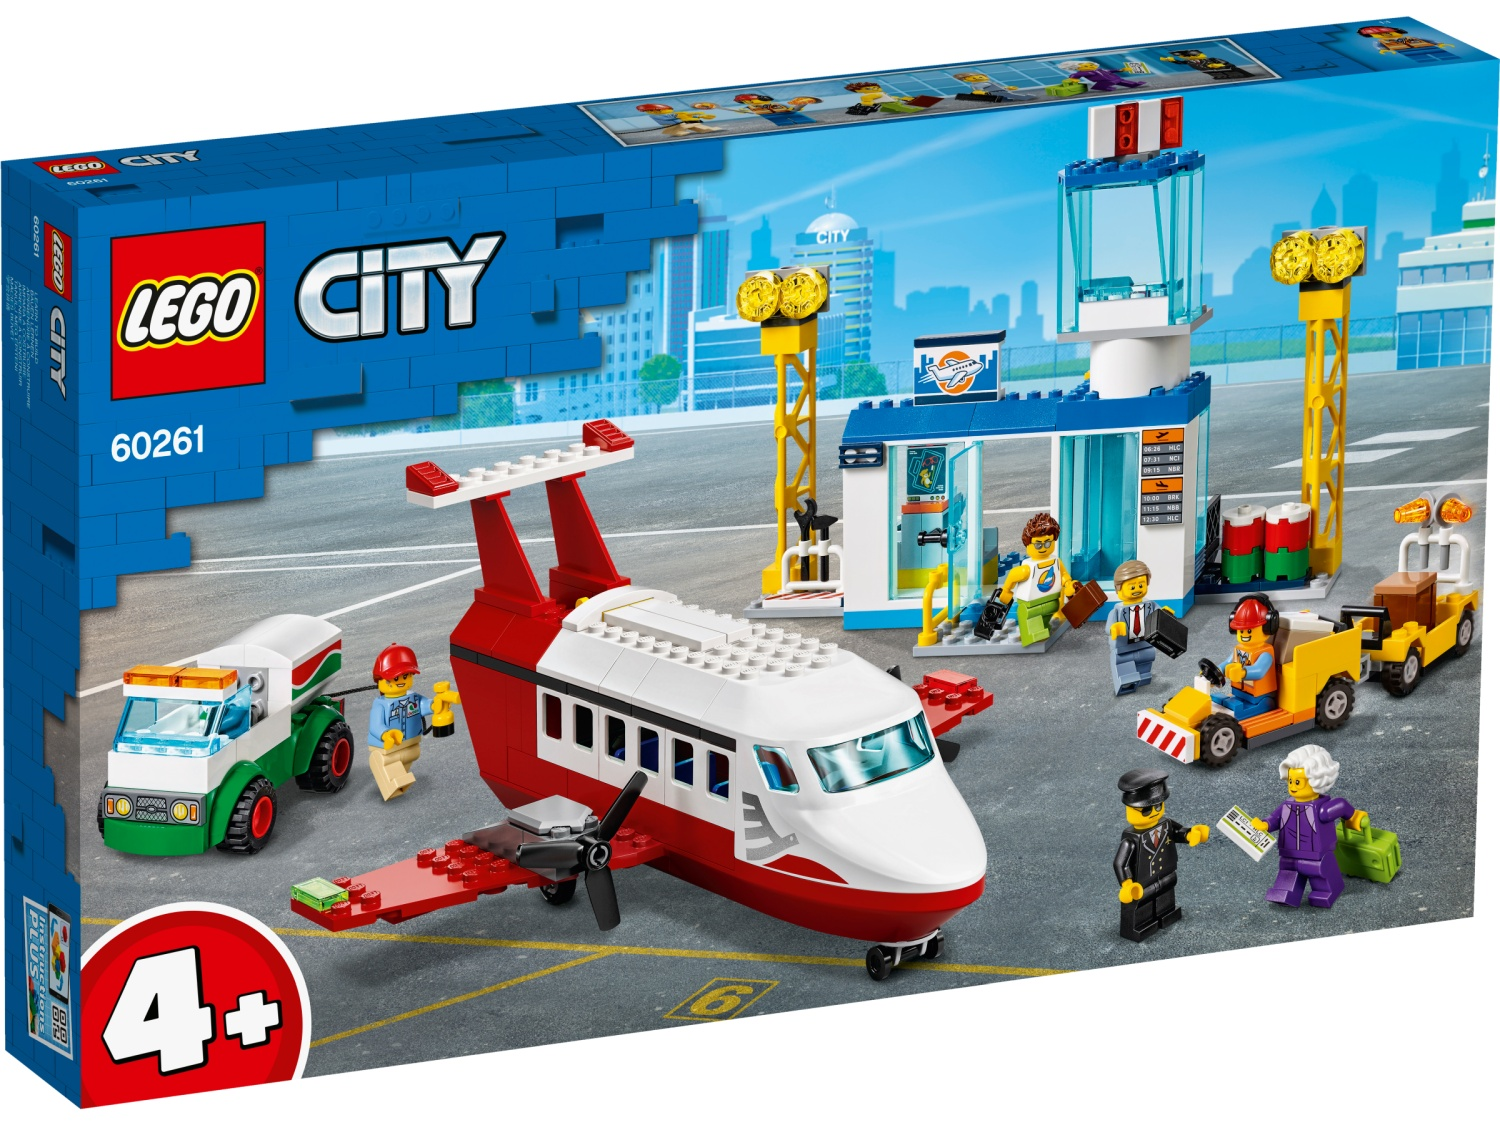 Lego City Summer 2020 Official Set Images The Brick Fan